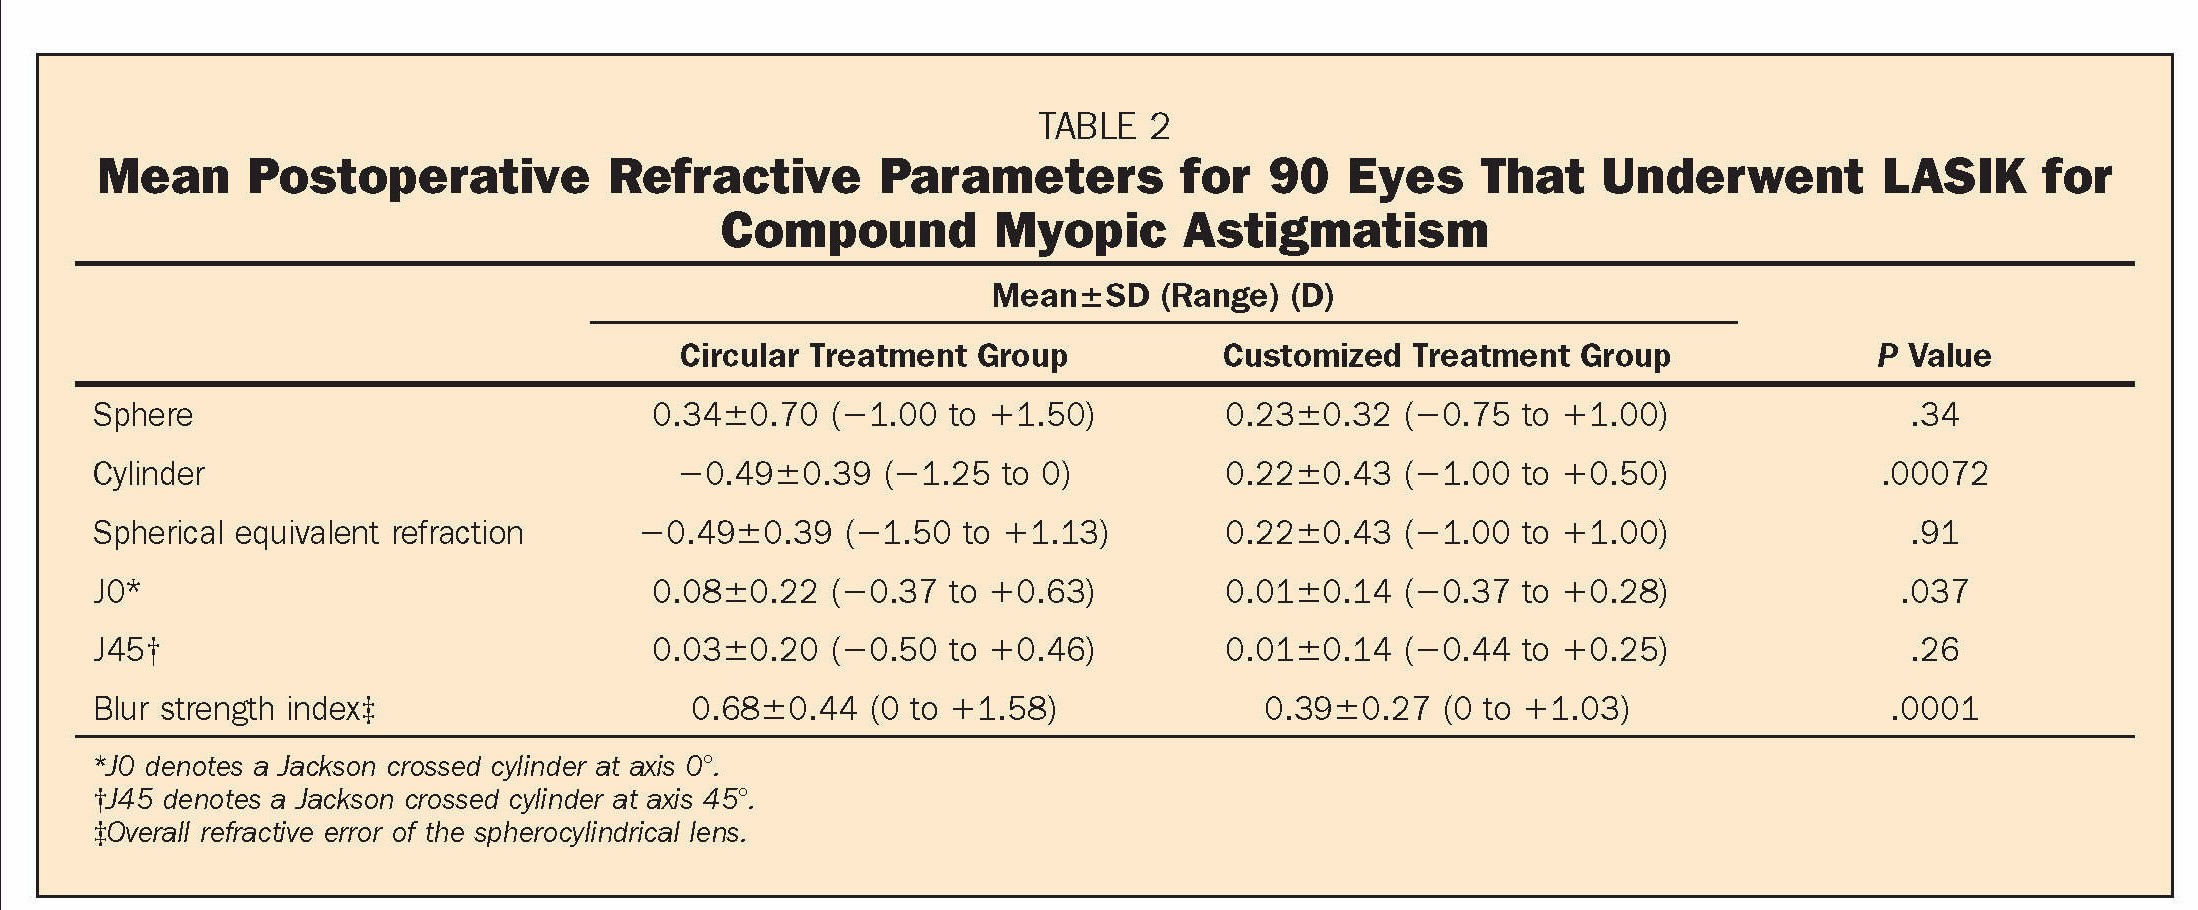 TABLE 2Mean Postoperative Refractive Parameters for 90 Eyes That Underwent LASIK for Compound Myopic Astigmatism